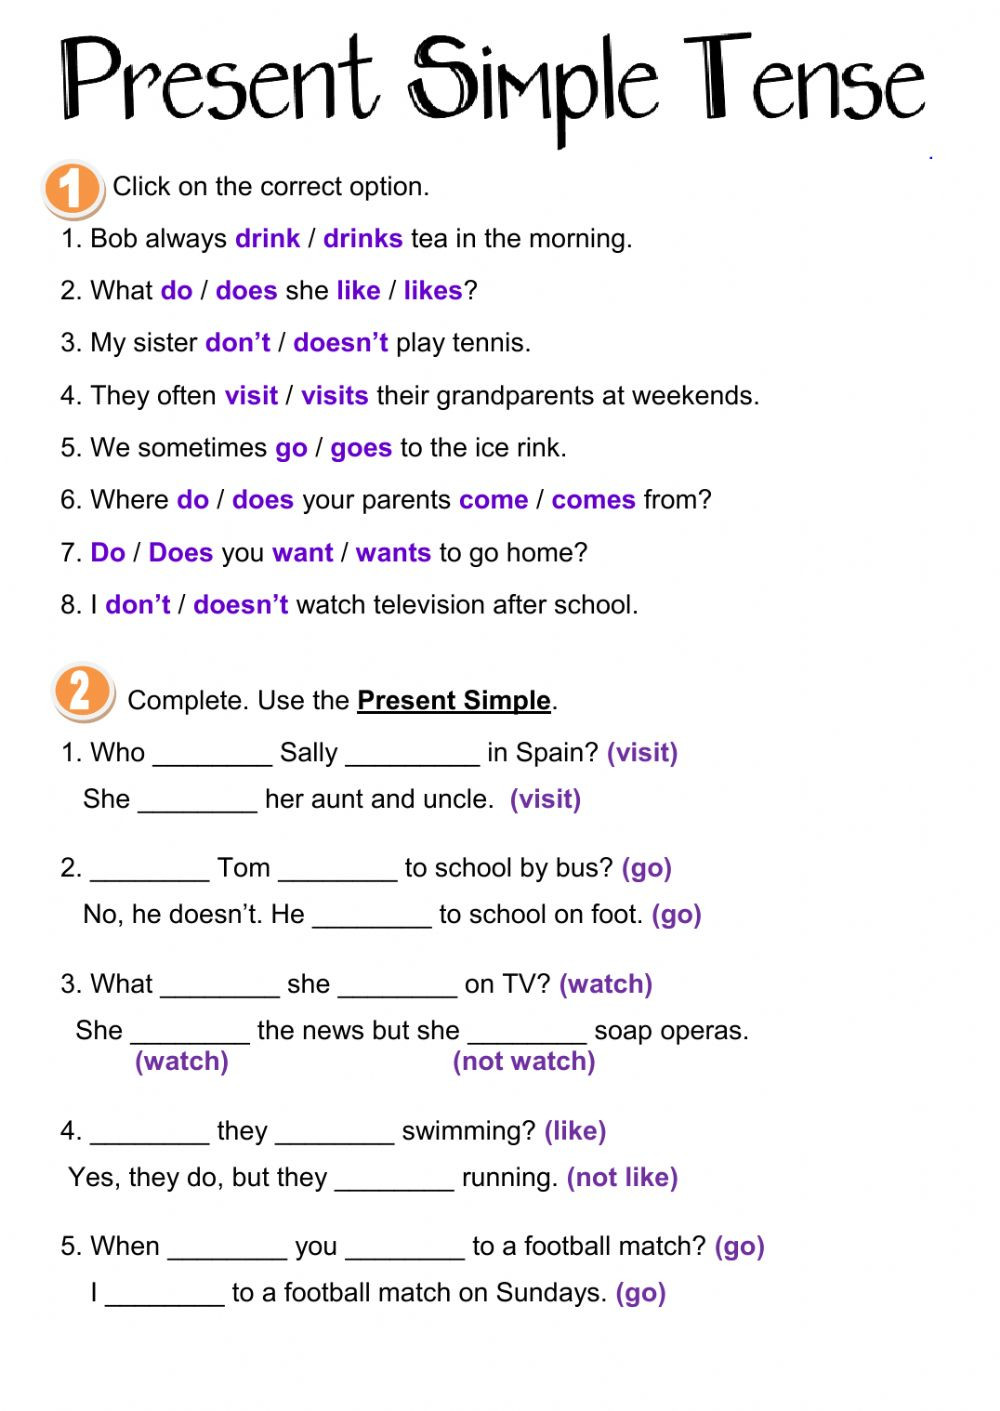 Tenses Worksheets for Grade 6 Present Simple Tense Interactive Worksheet